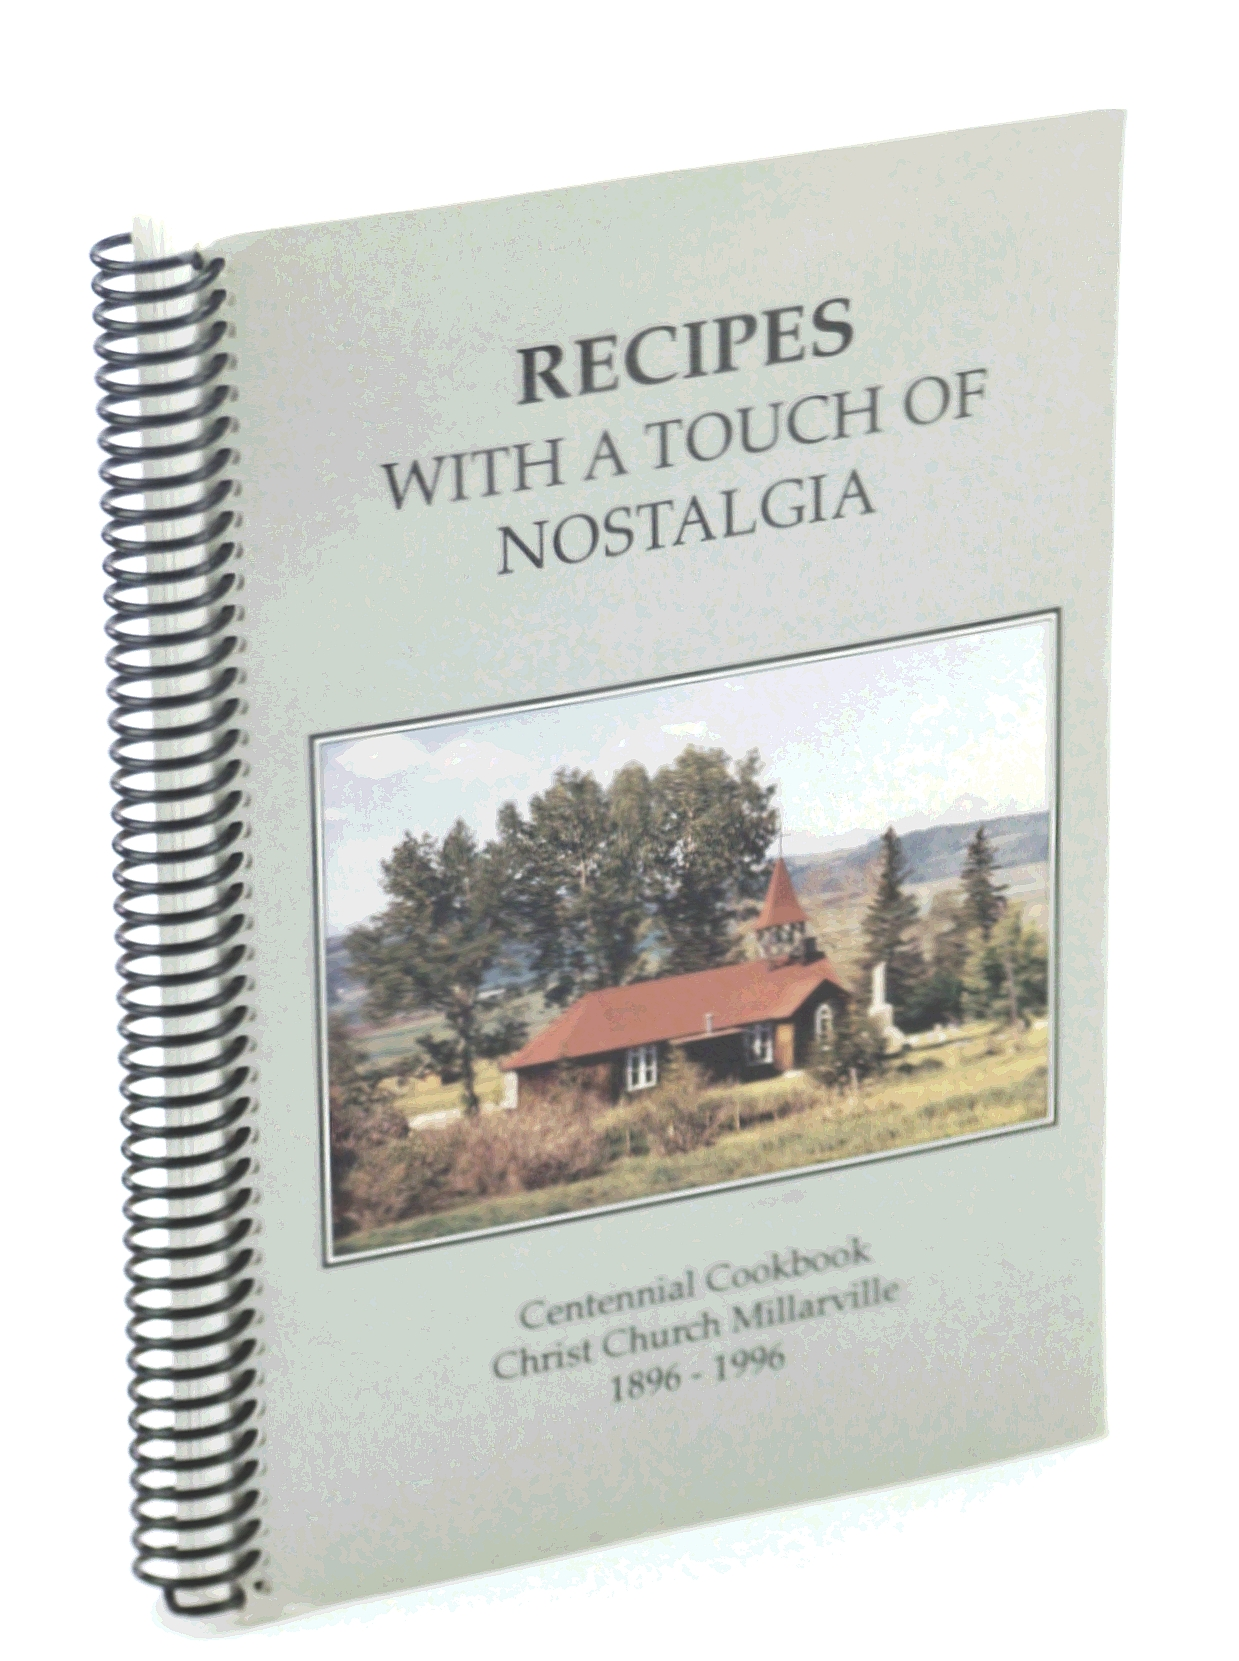 Image for Recipes with a touch of nostalgia: Centennial cookbook, Christ Church, Millarville, 1896-1996